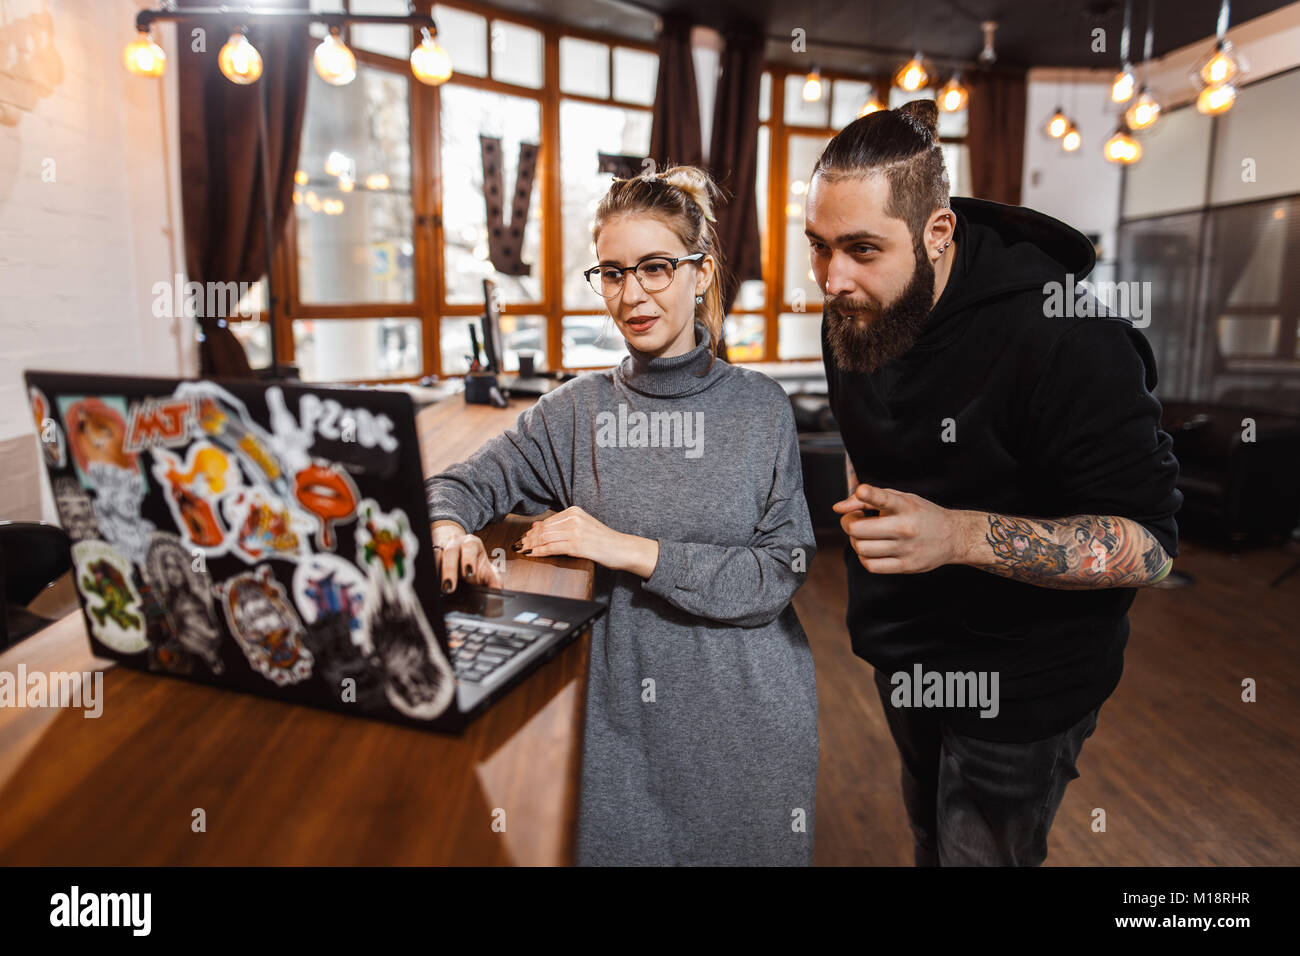 Man and woman discussing over digital laptop in creative office - Stock Image